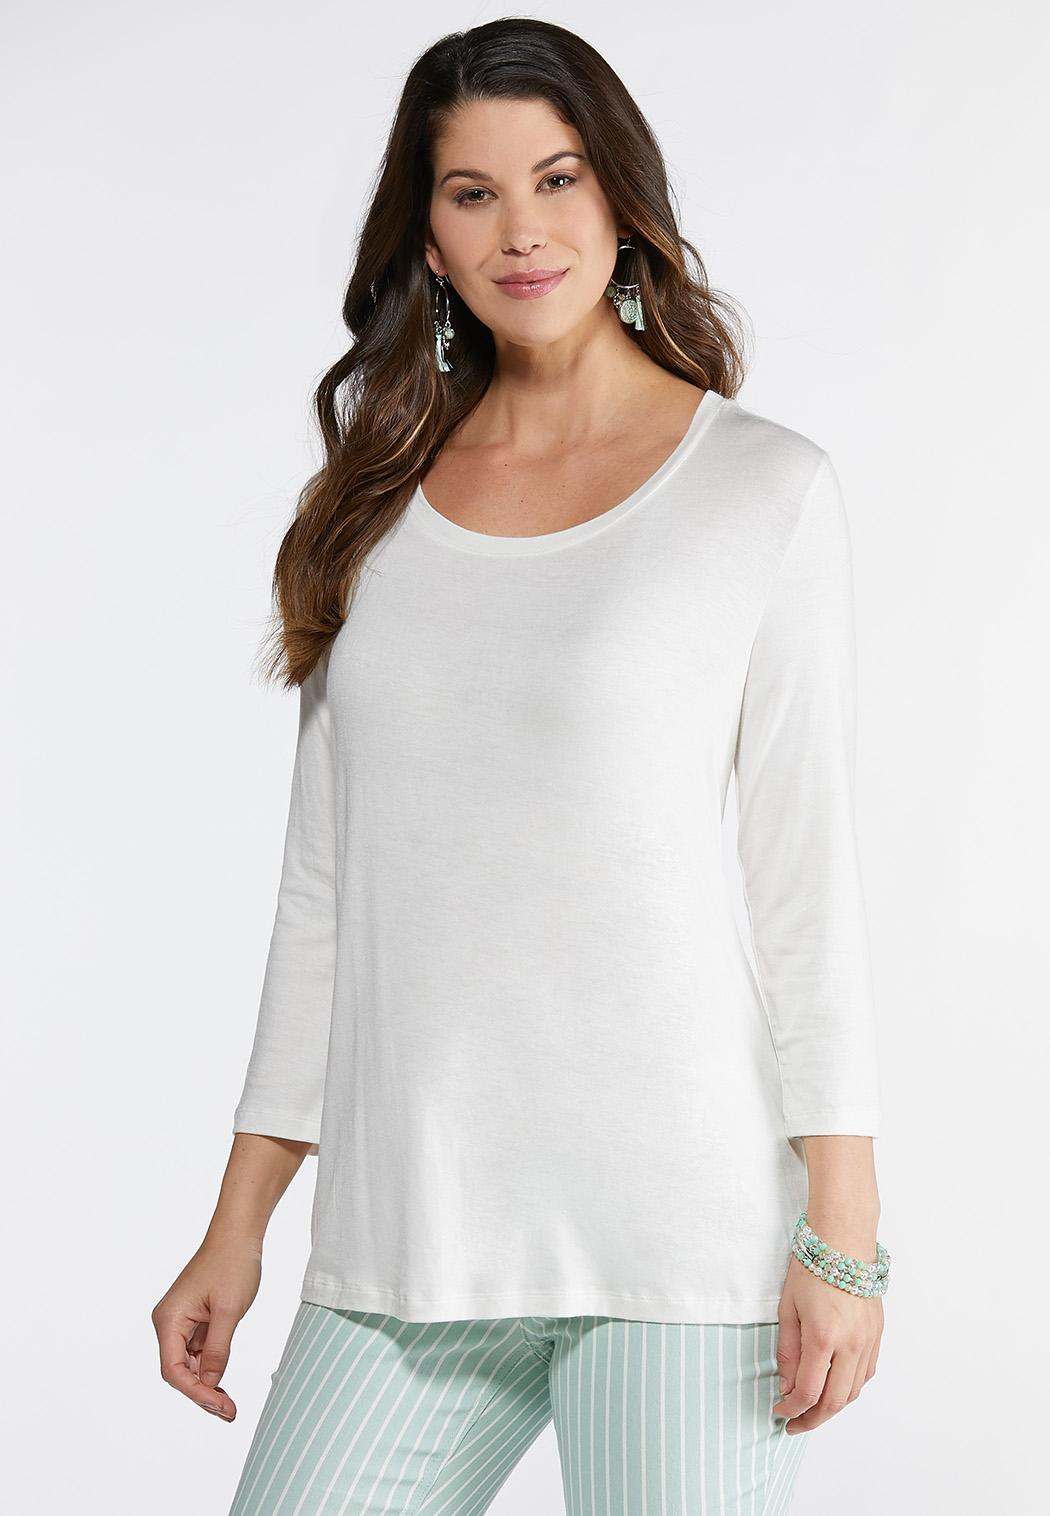 Plus Size Solid Scoop Neck Tee